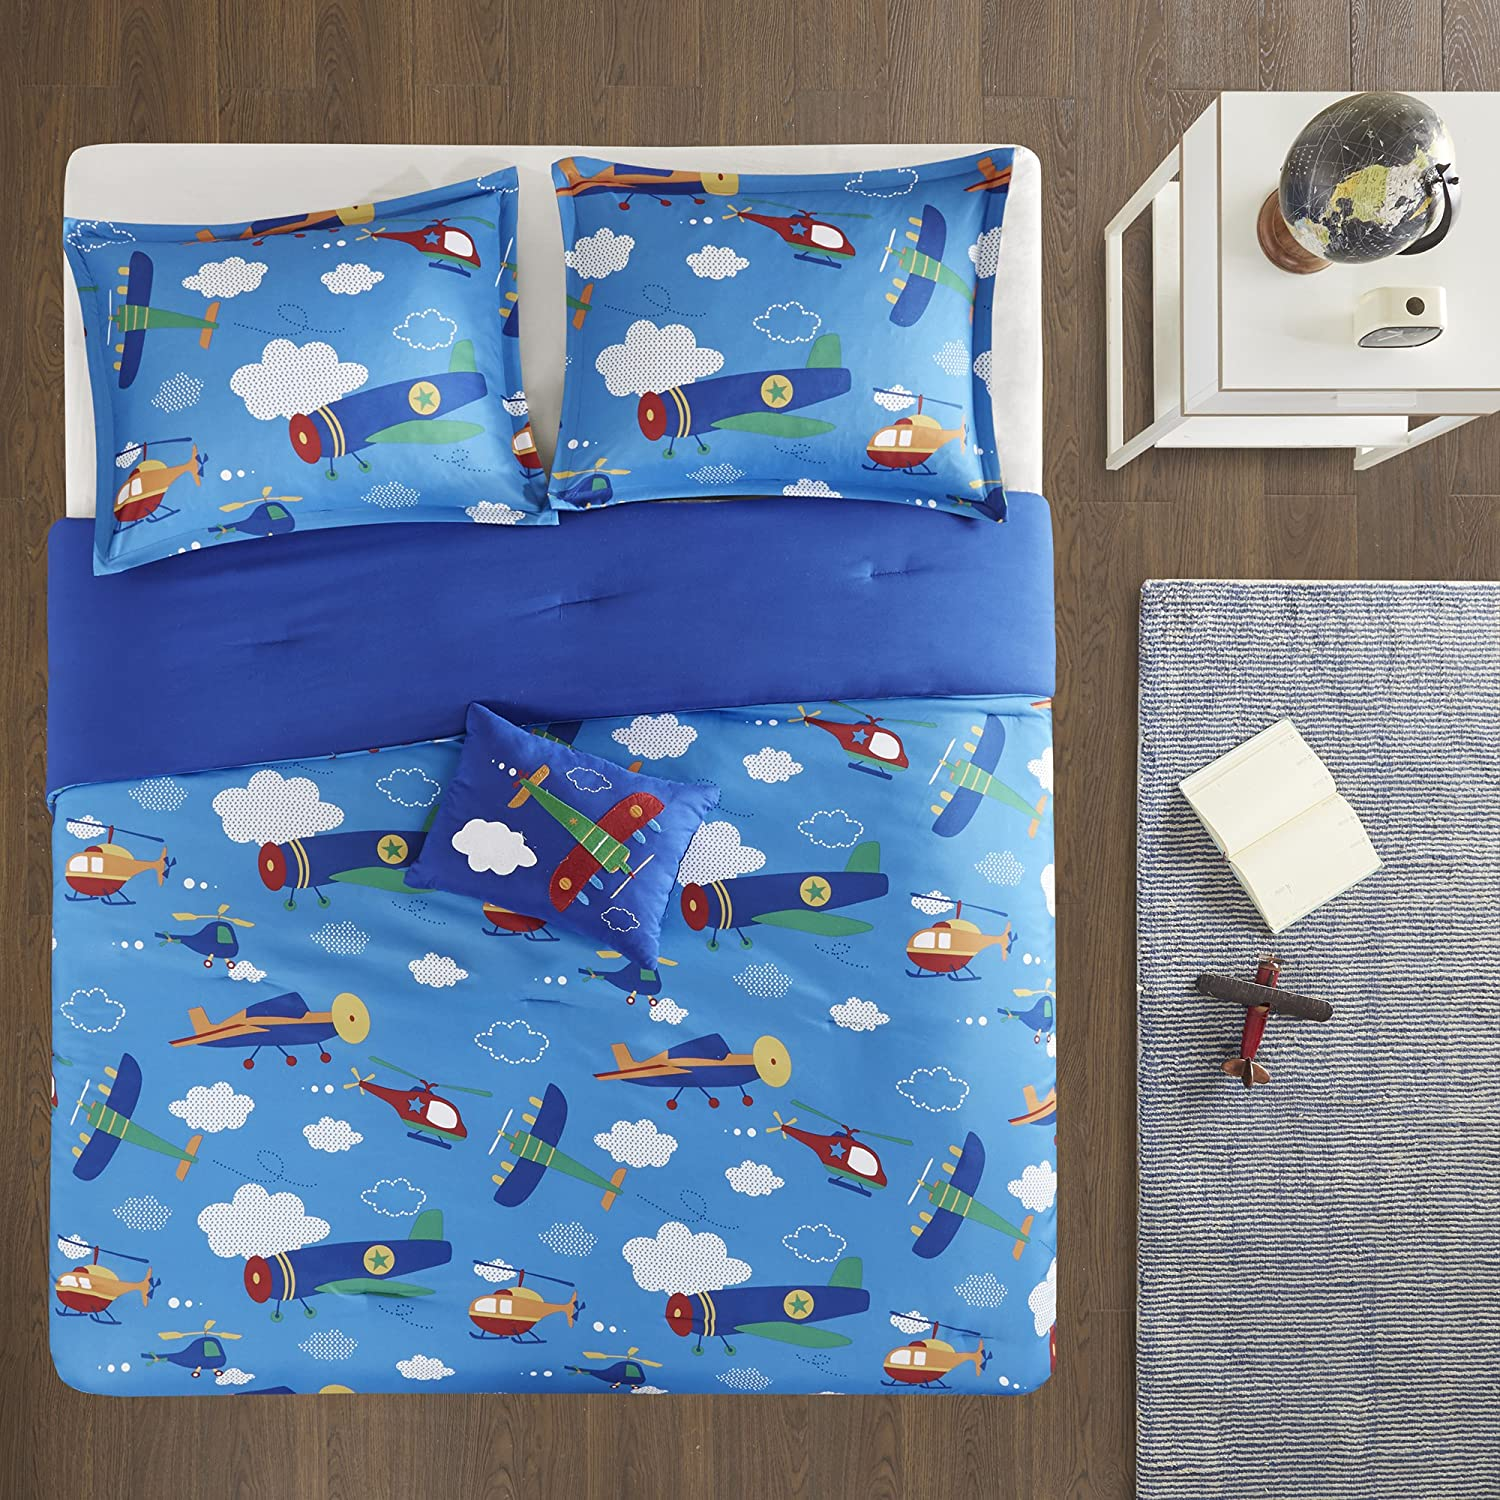 Fullqueen Bedding For Boys  Wright 4 Piece Cute Kids